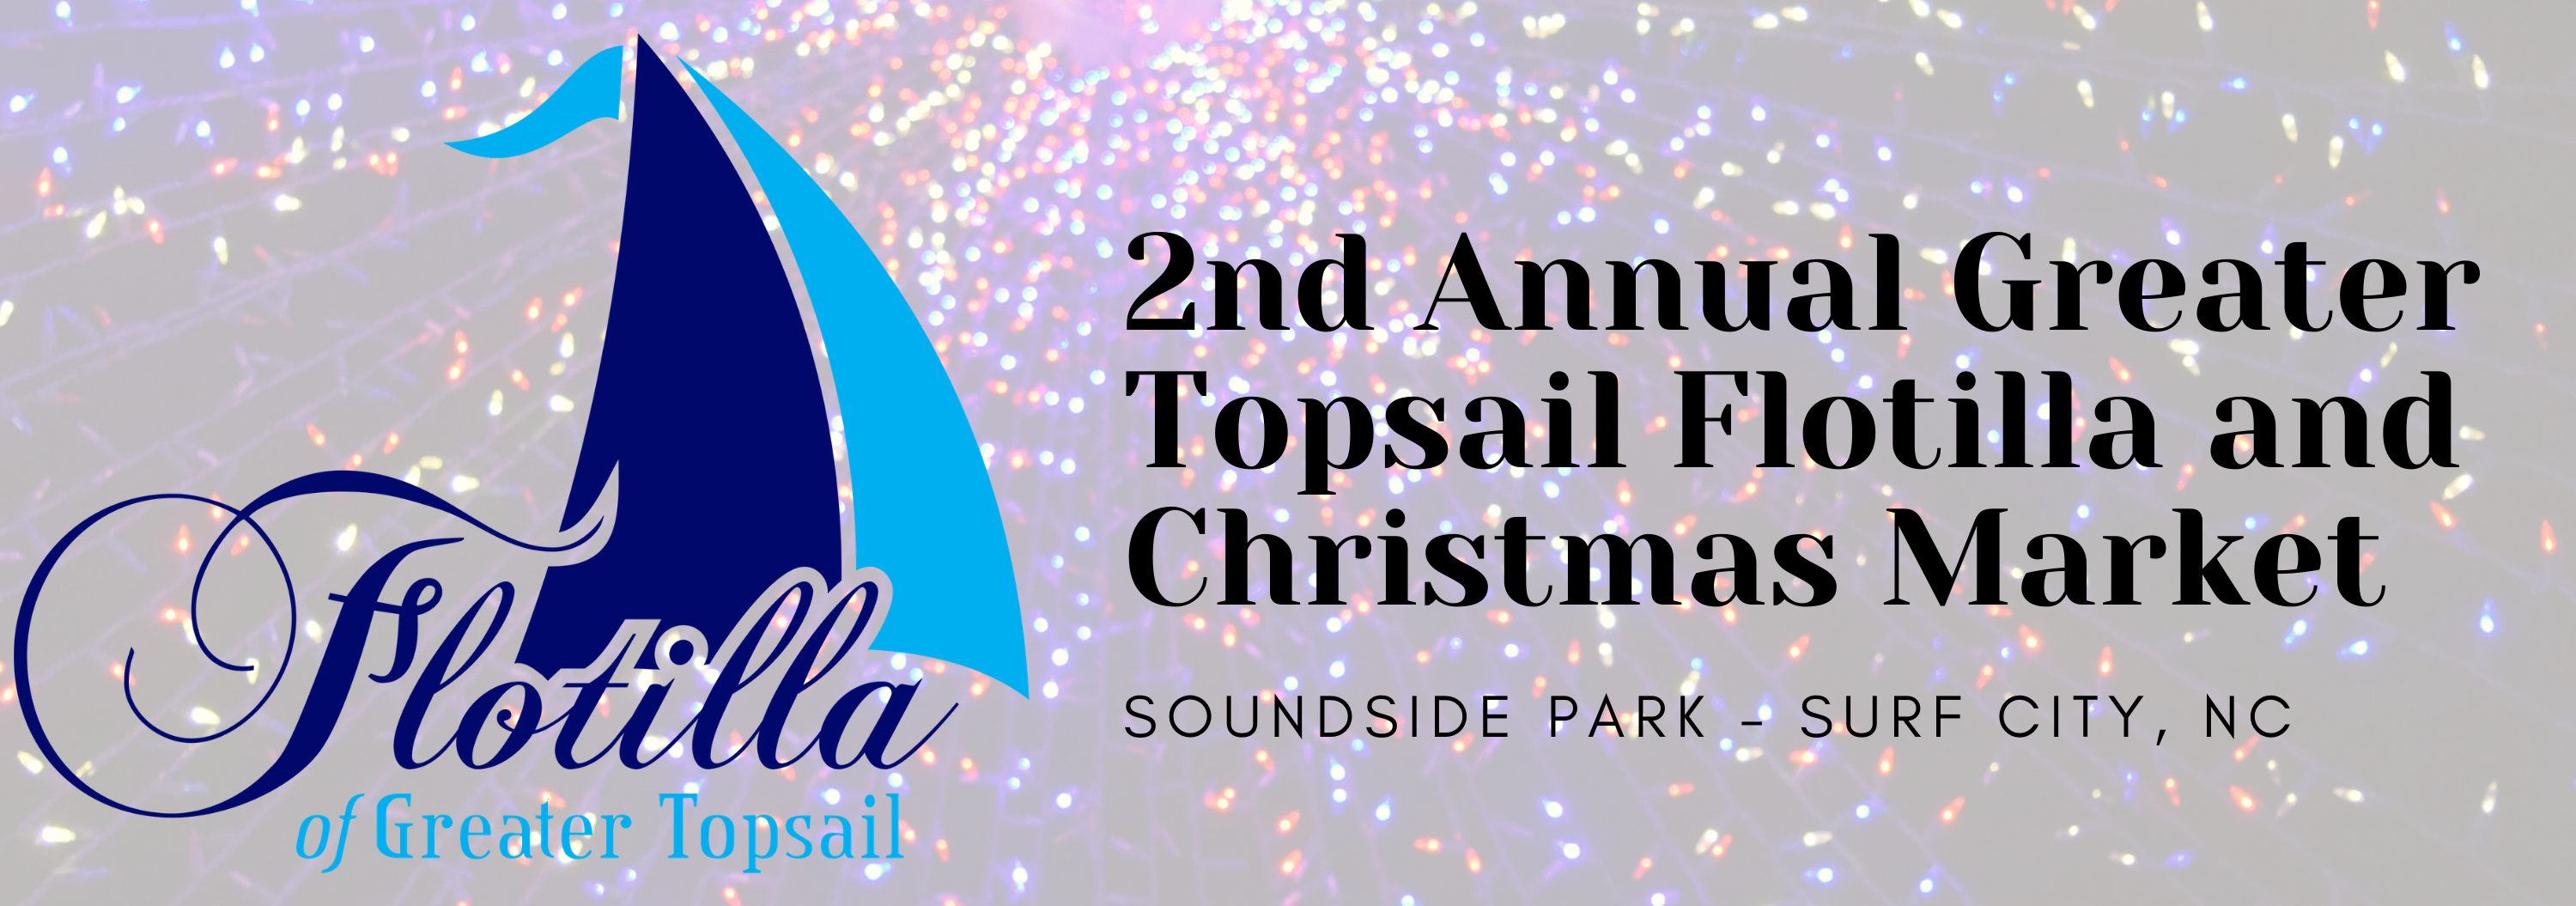 2nd Annual Greater Topsail Flotilla and Christmas Market